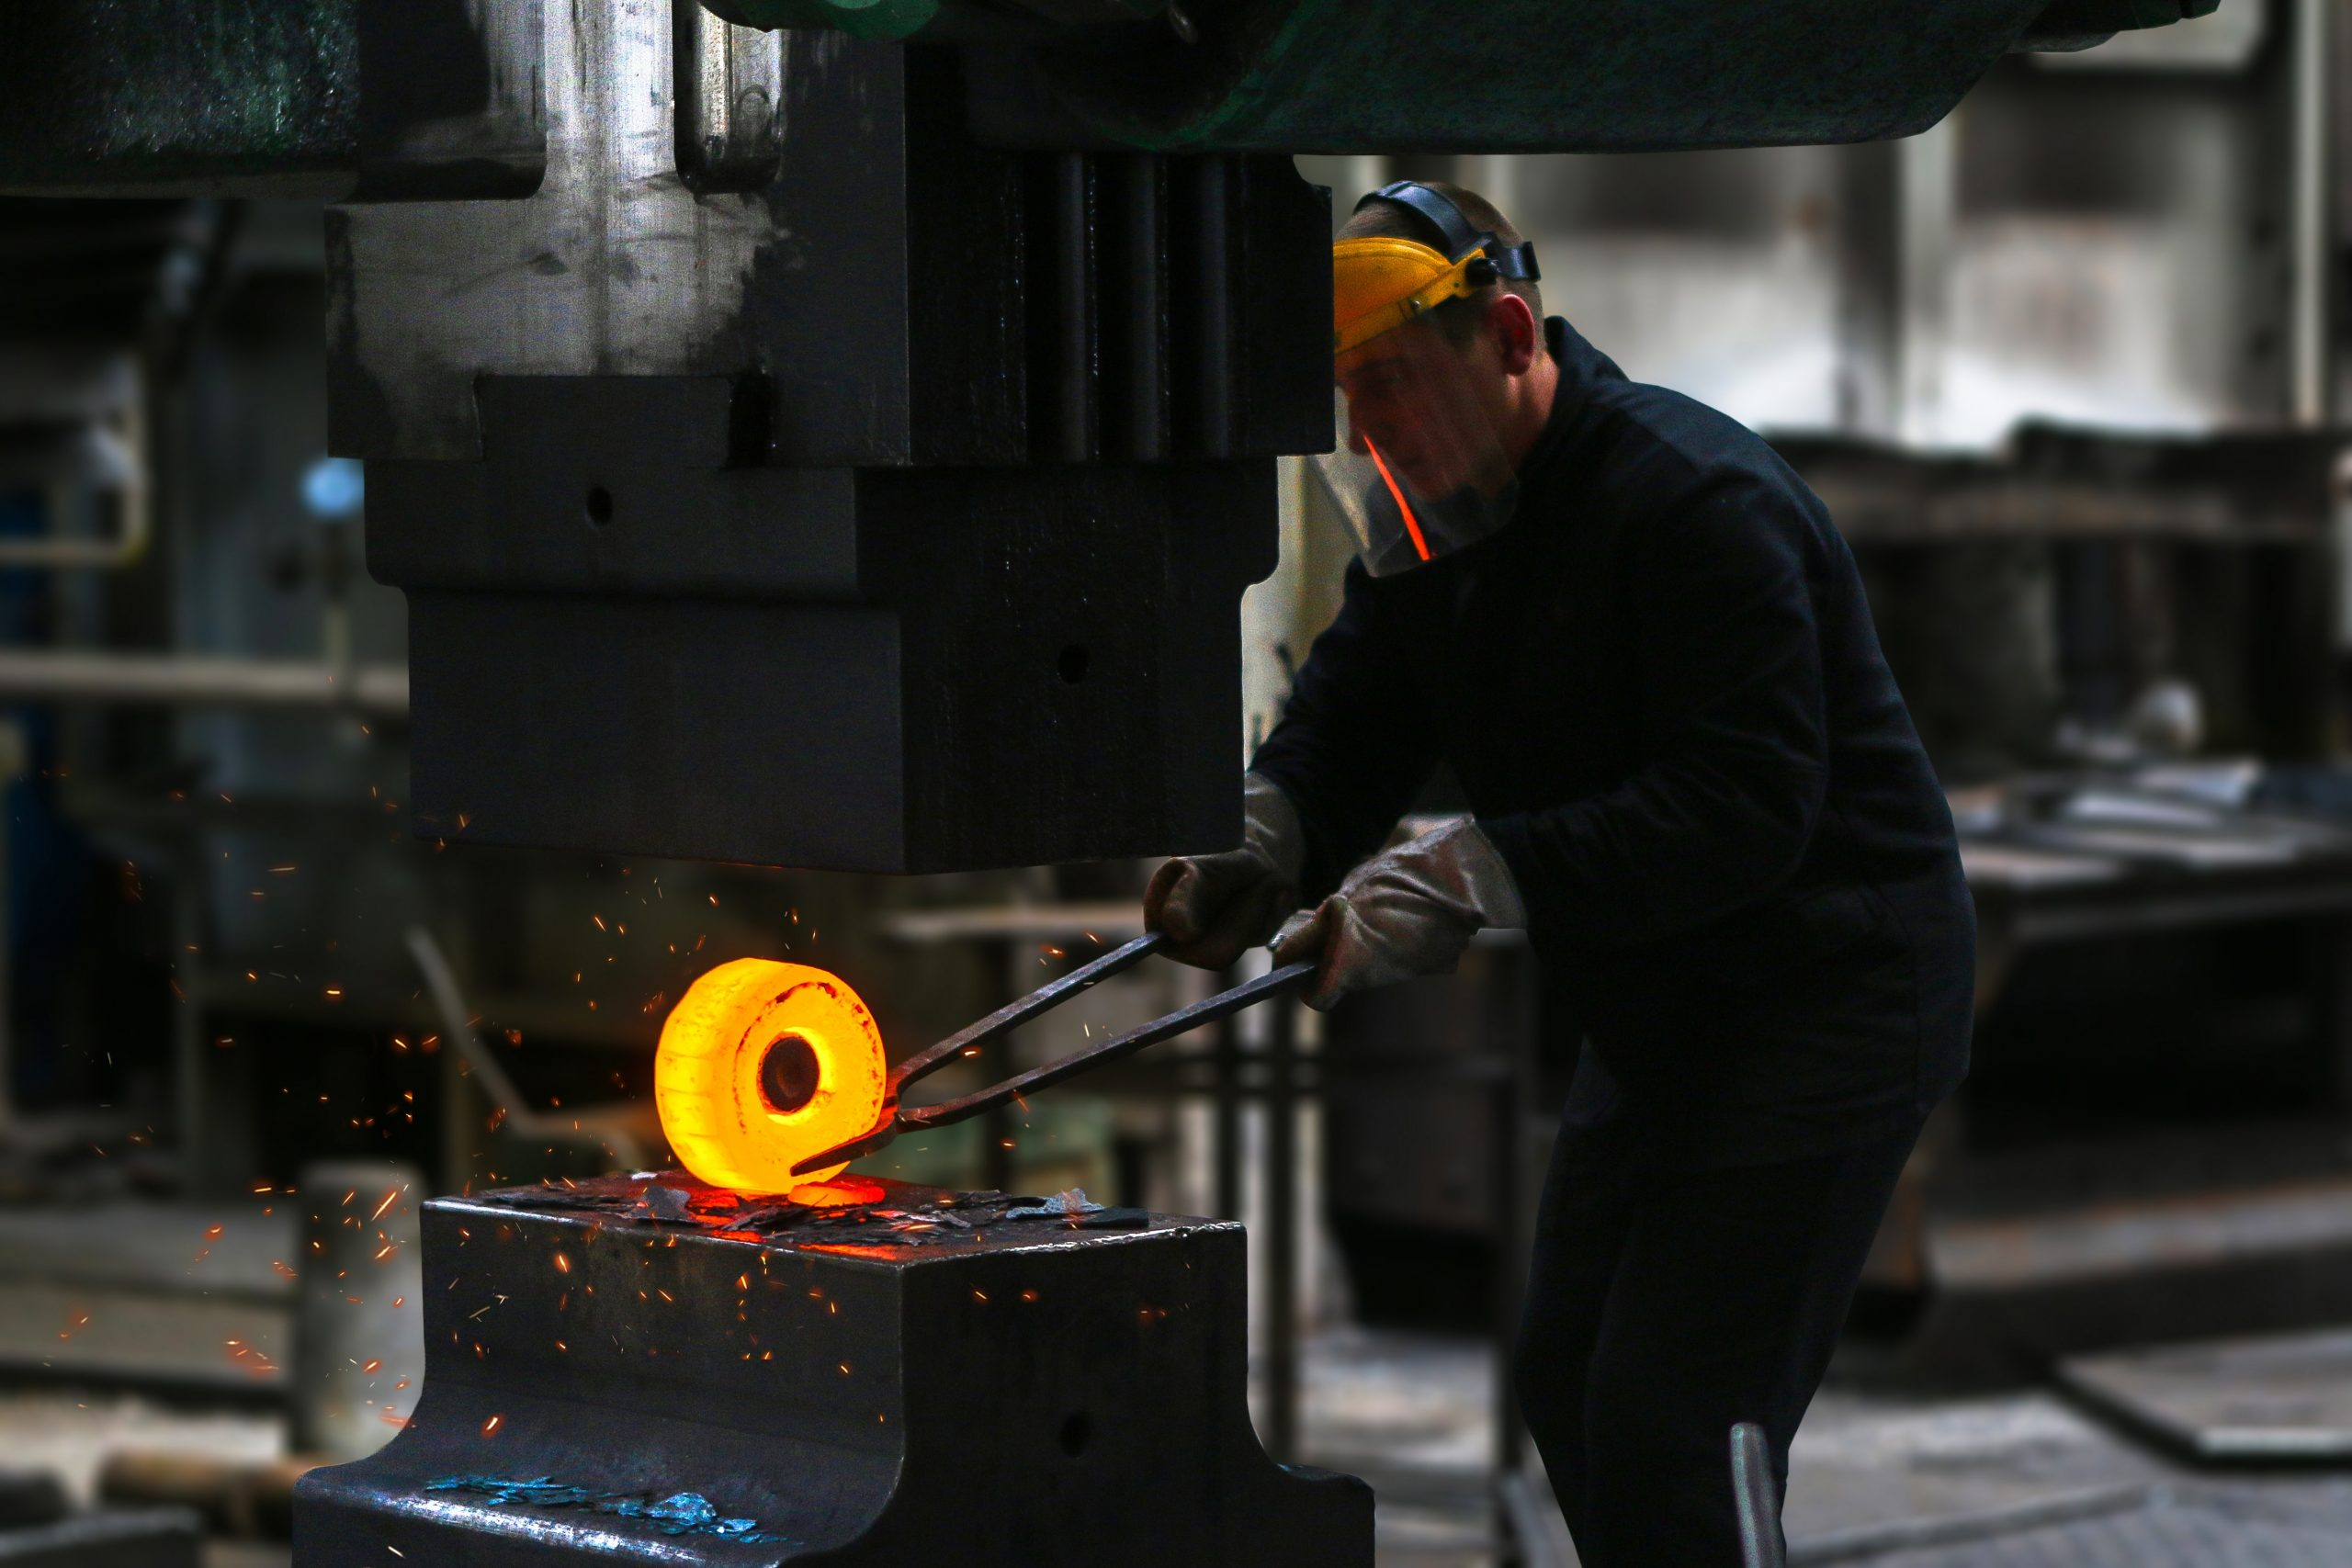 Modern Manufacturing and Technology